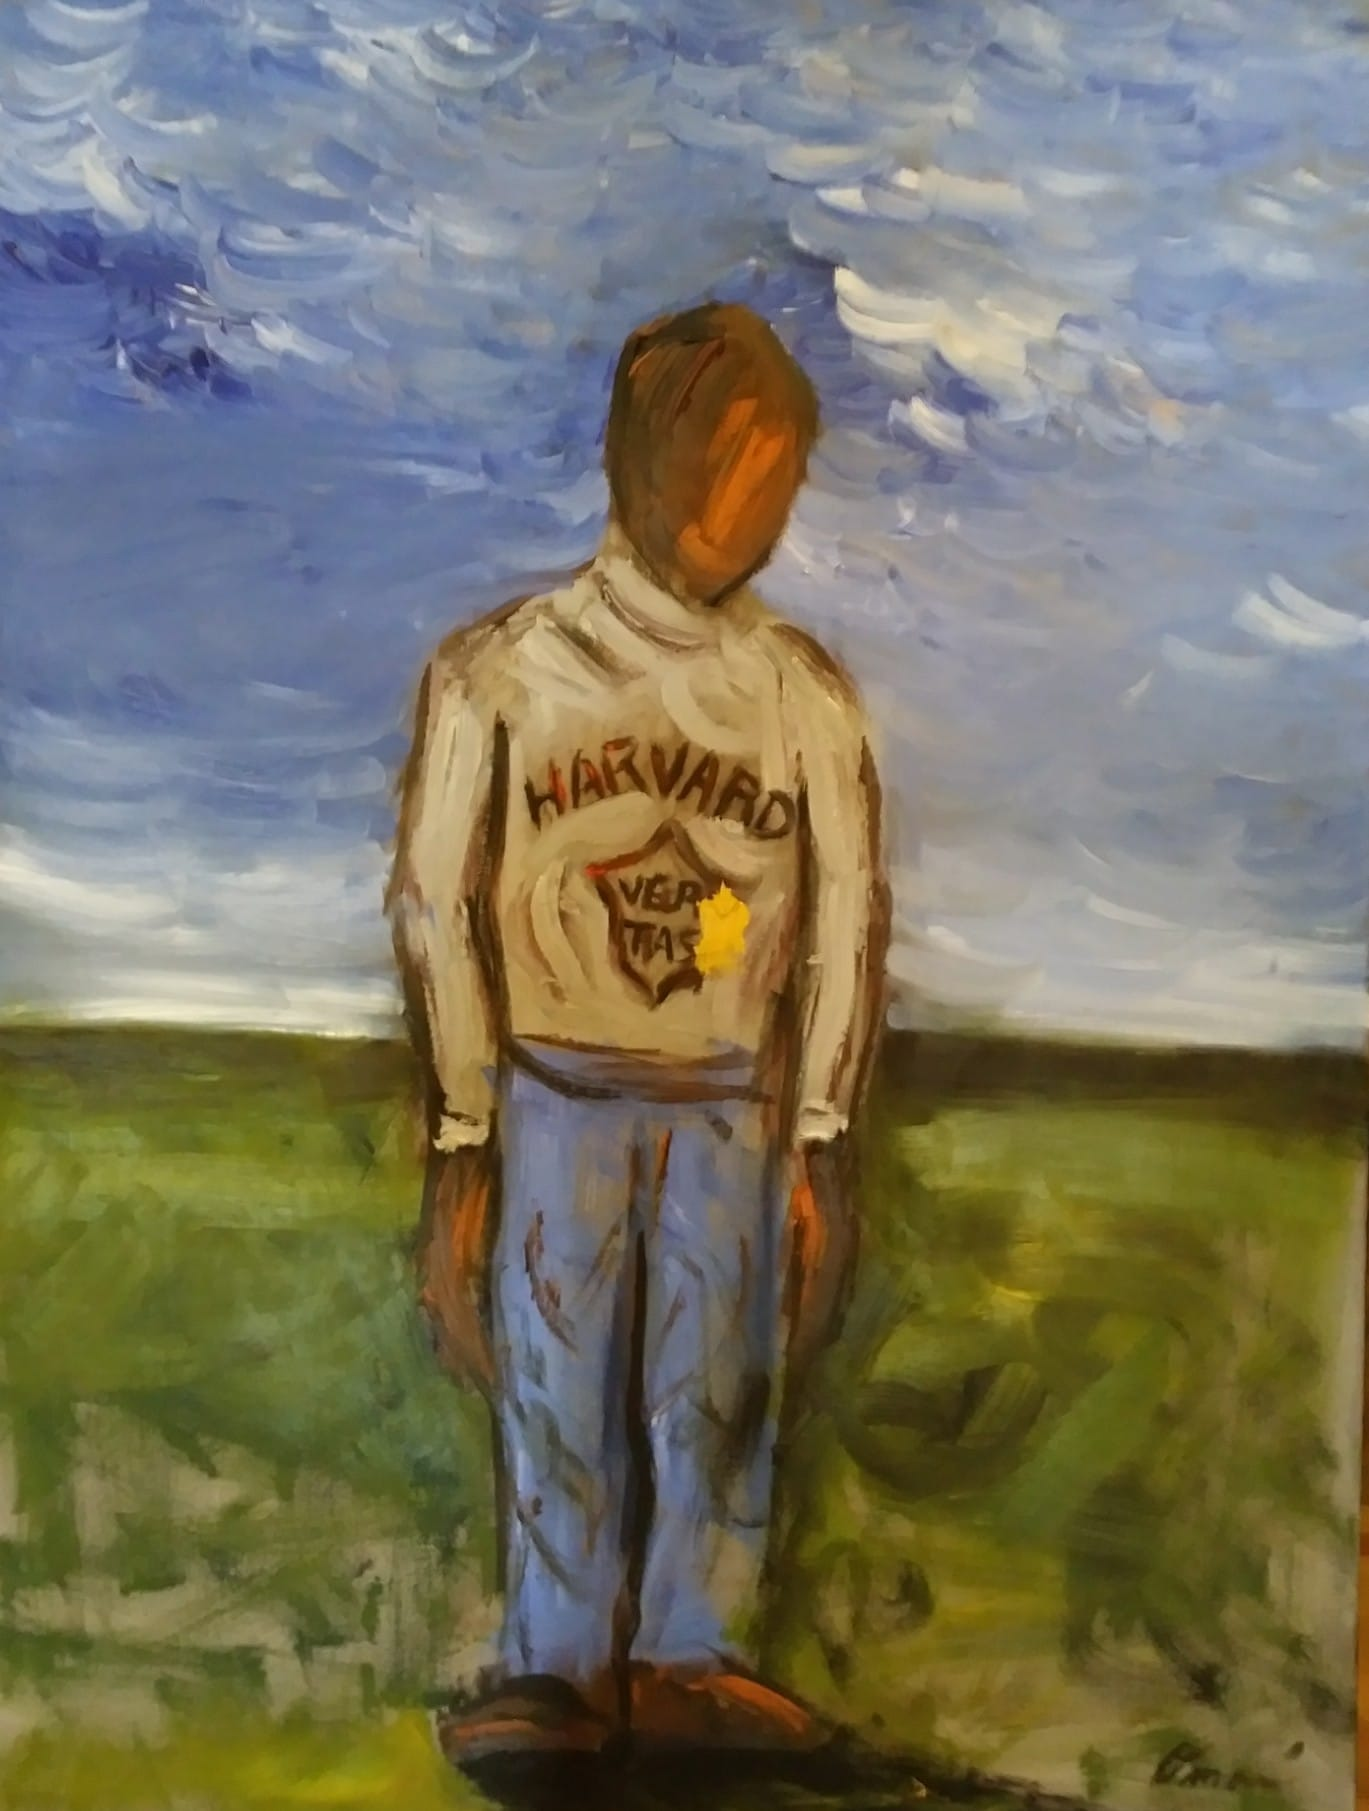 Painting by Omari Booker of himself as a child wearing a Harvard sweatshirt which belonged to his father, after a schoolmate spat on the sweater.